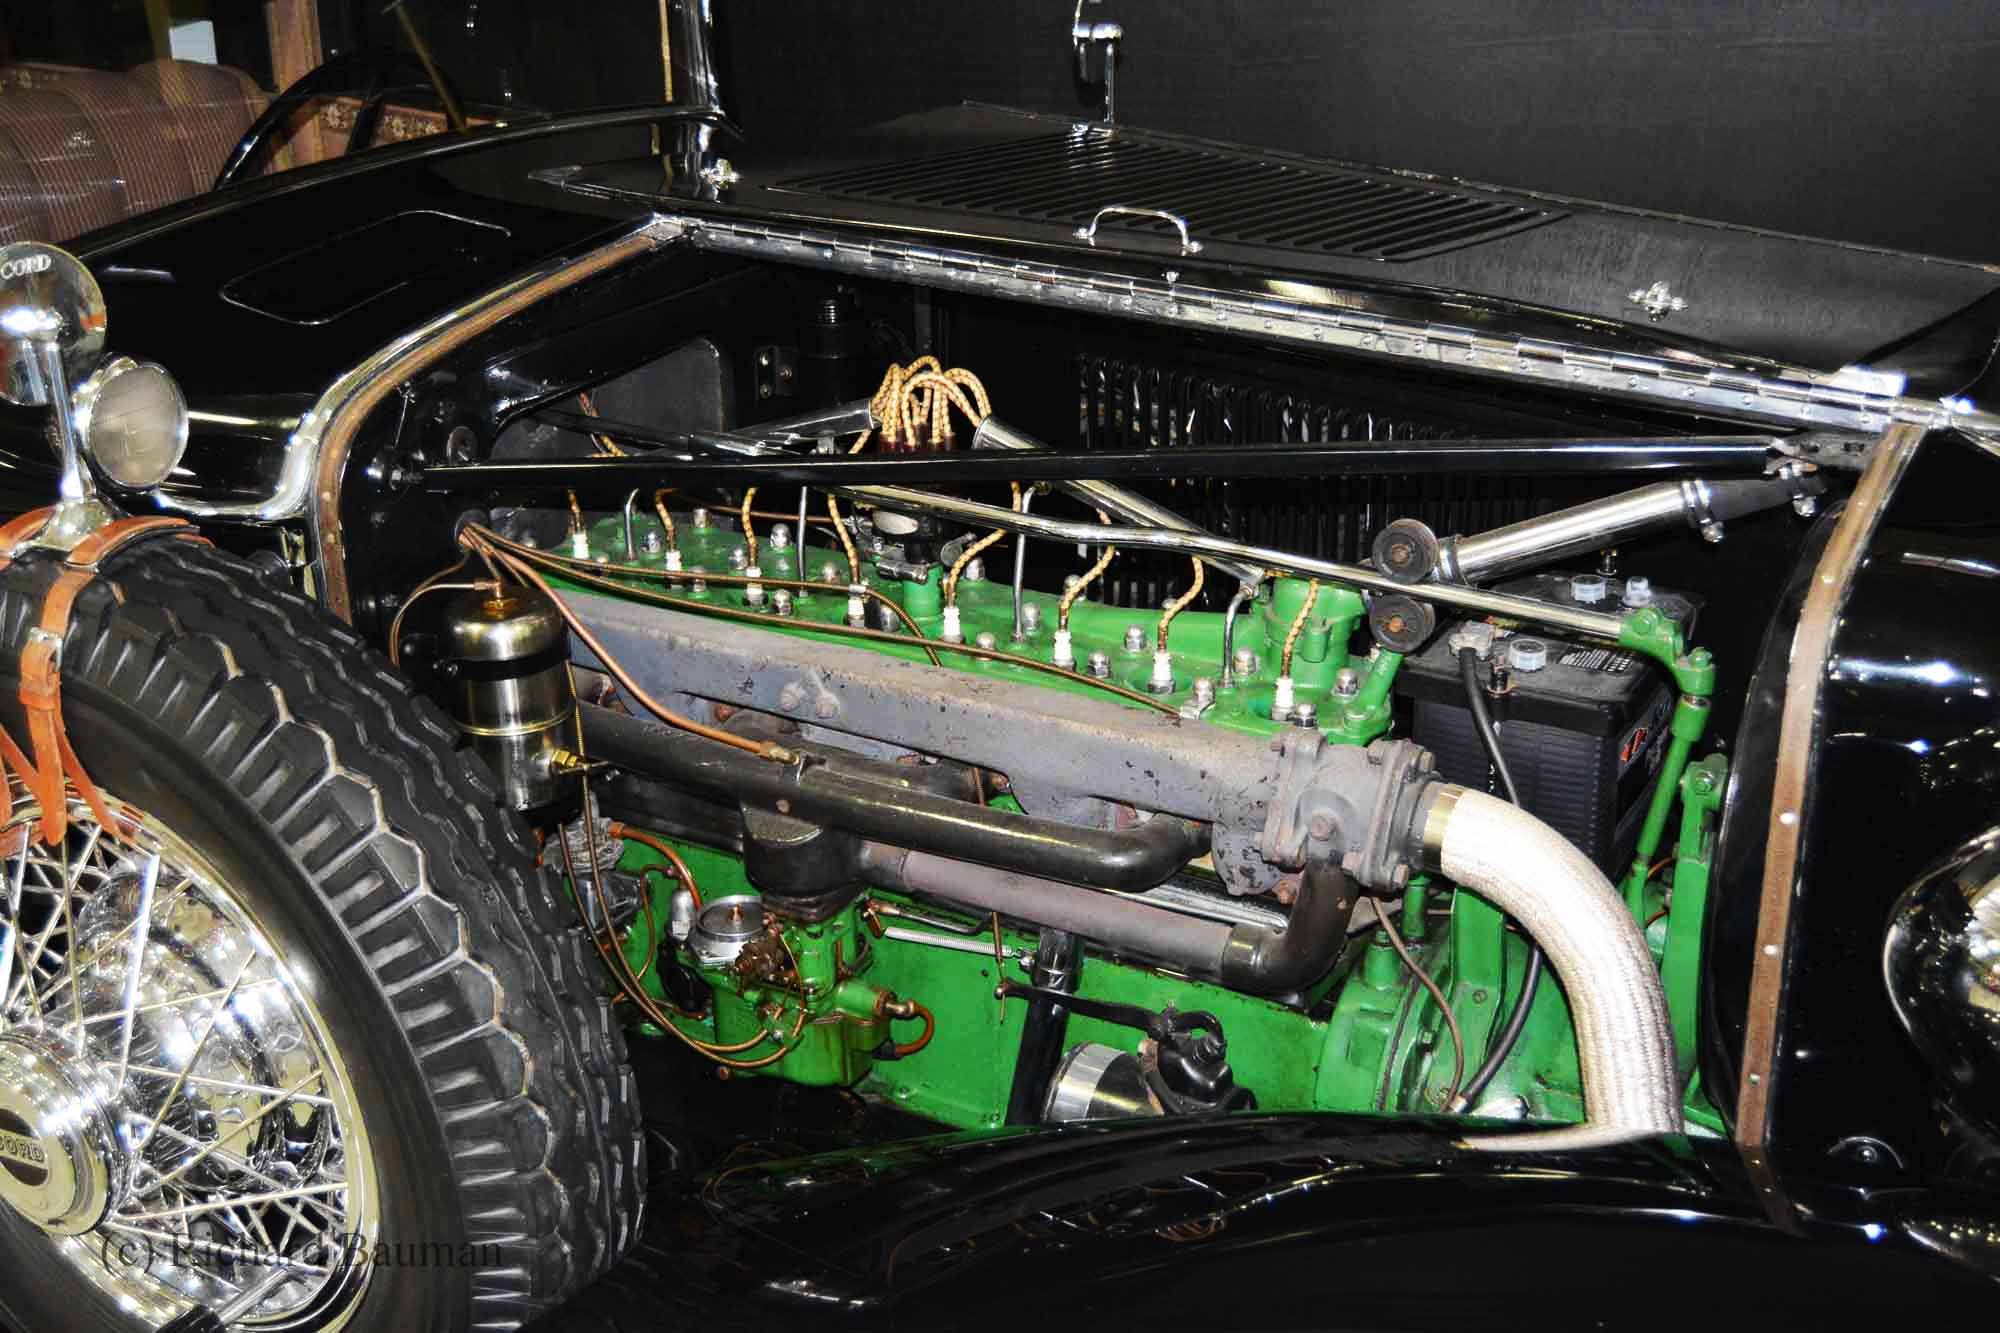 1929 Cord Brougham inline 8 cylinder engine | Cars by Others